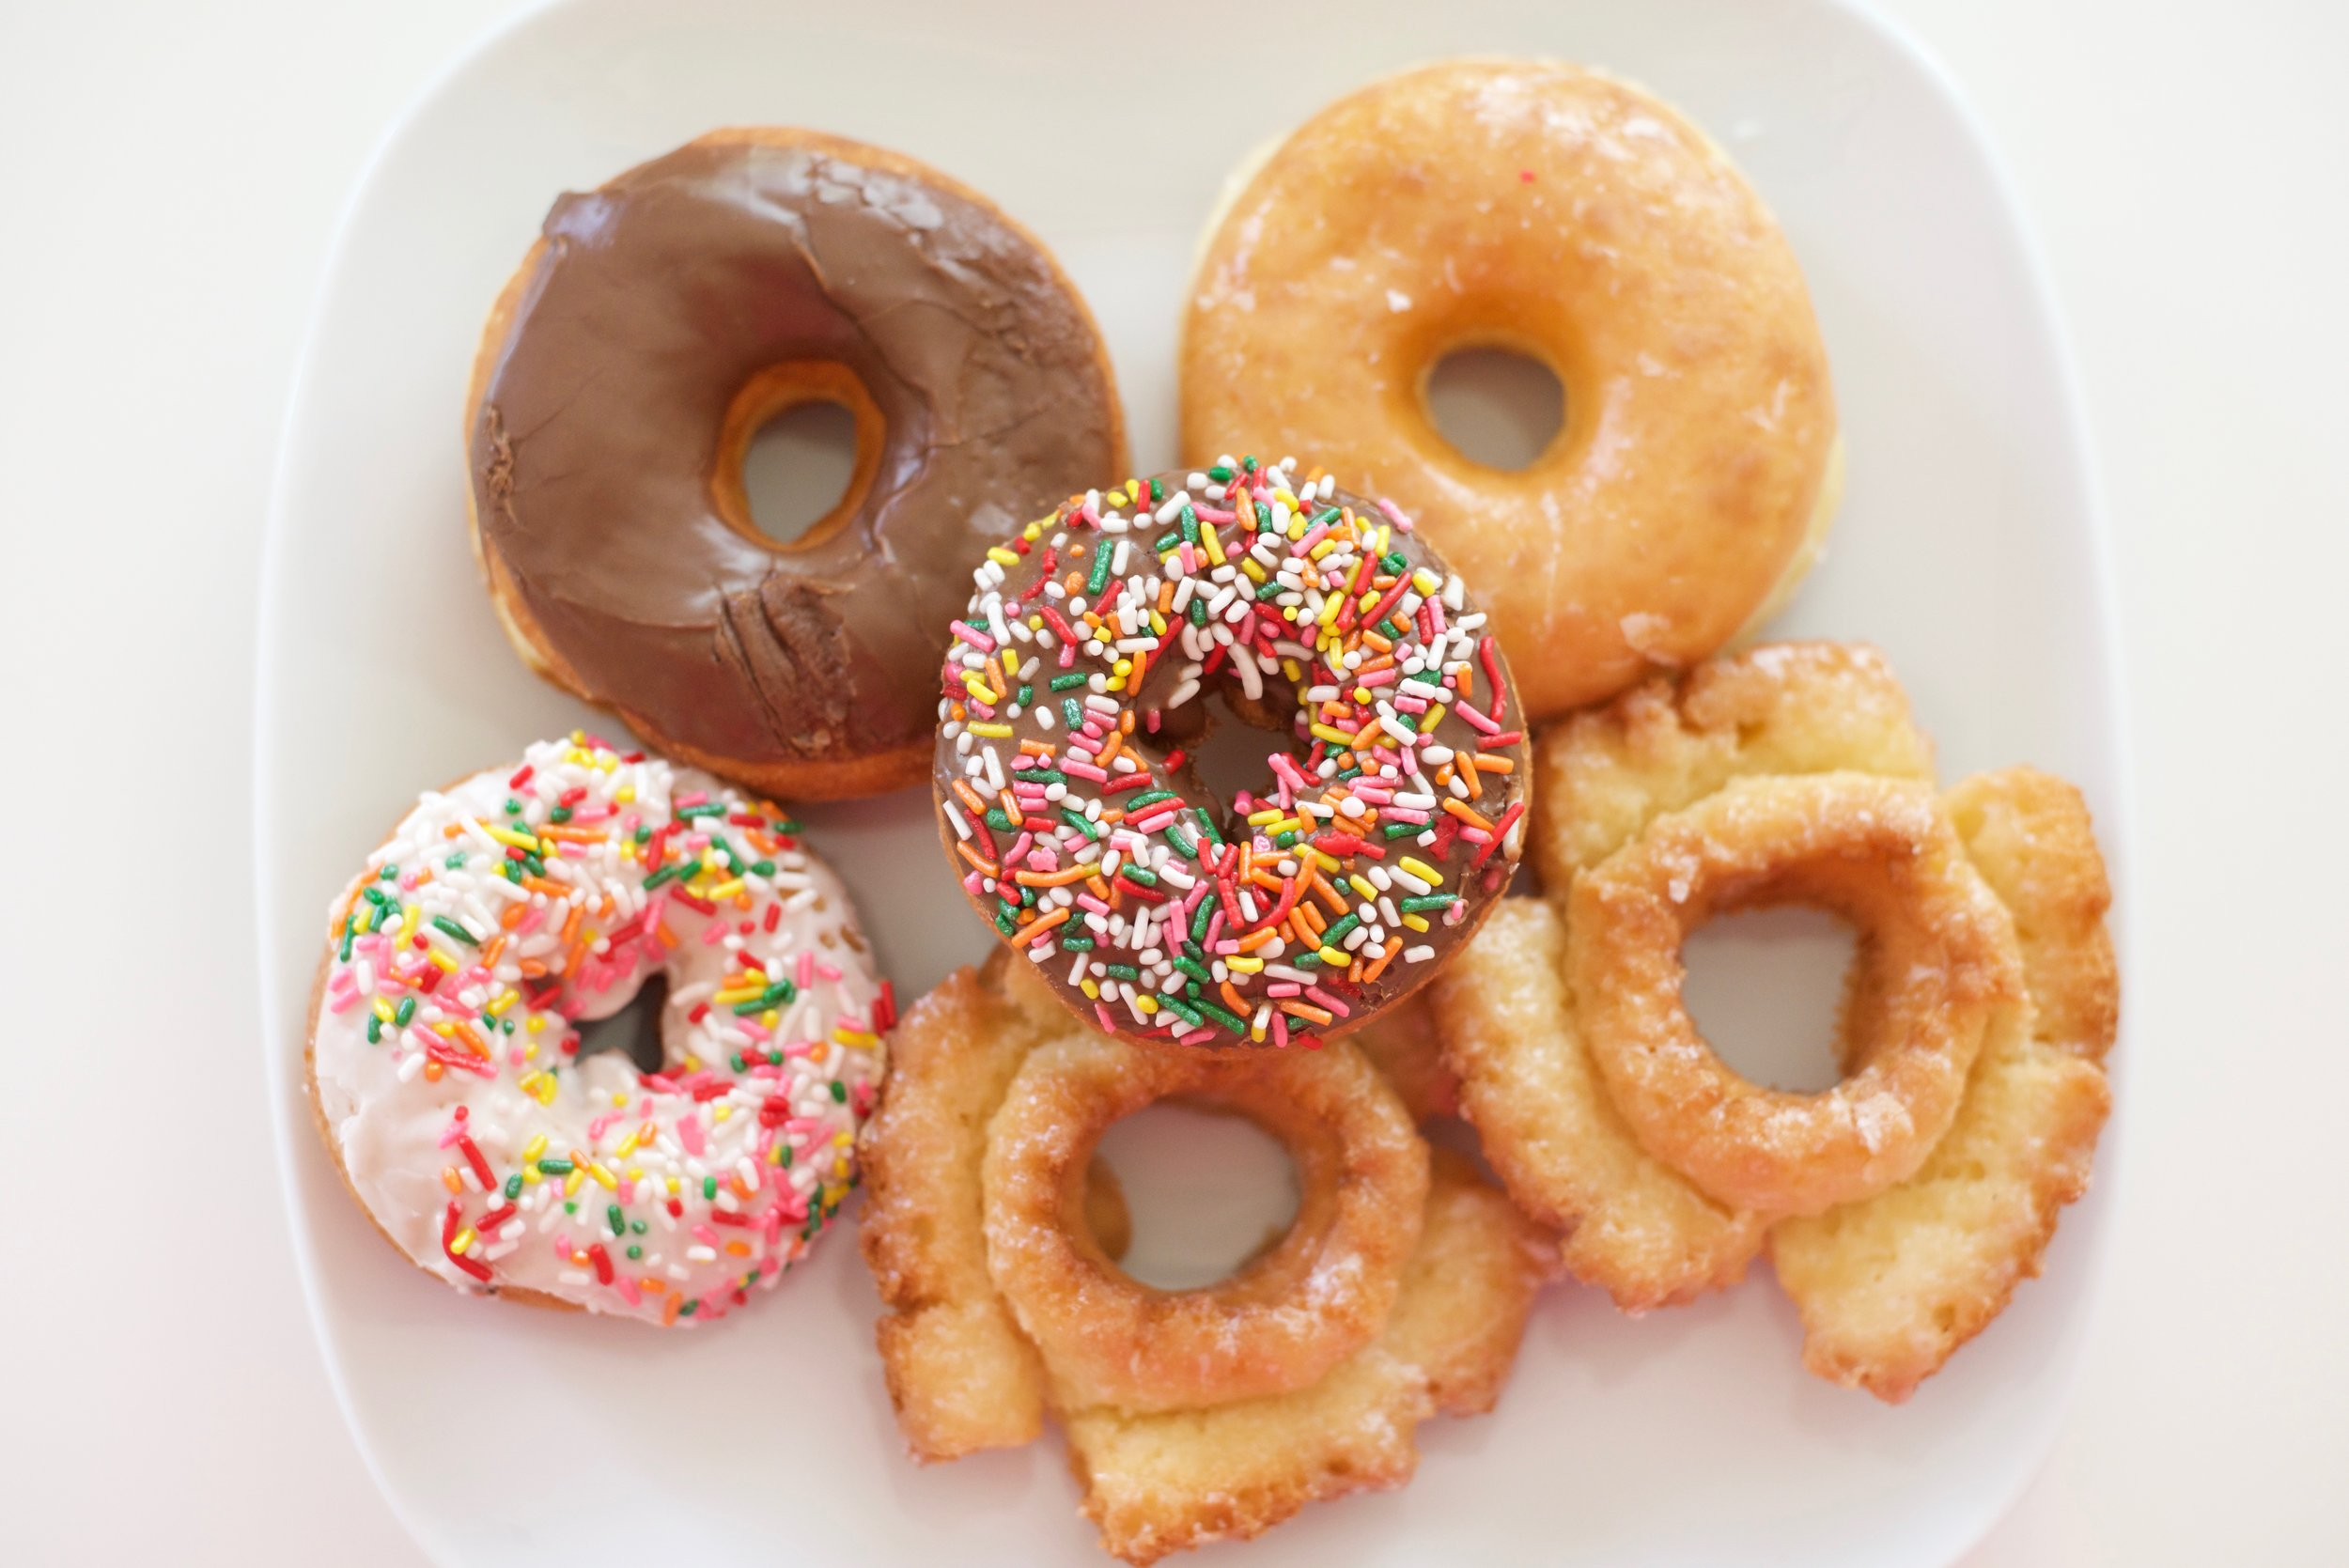 - Got to have donuts when it's your birthday